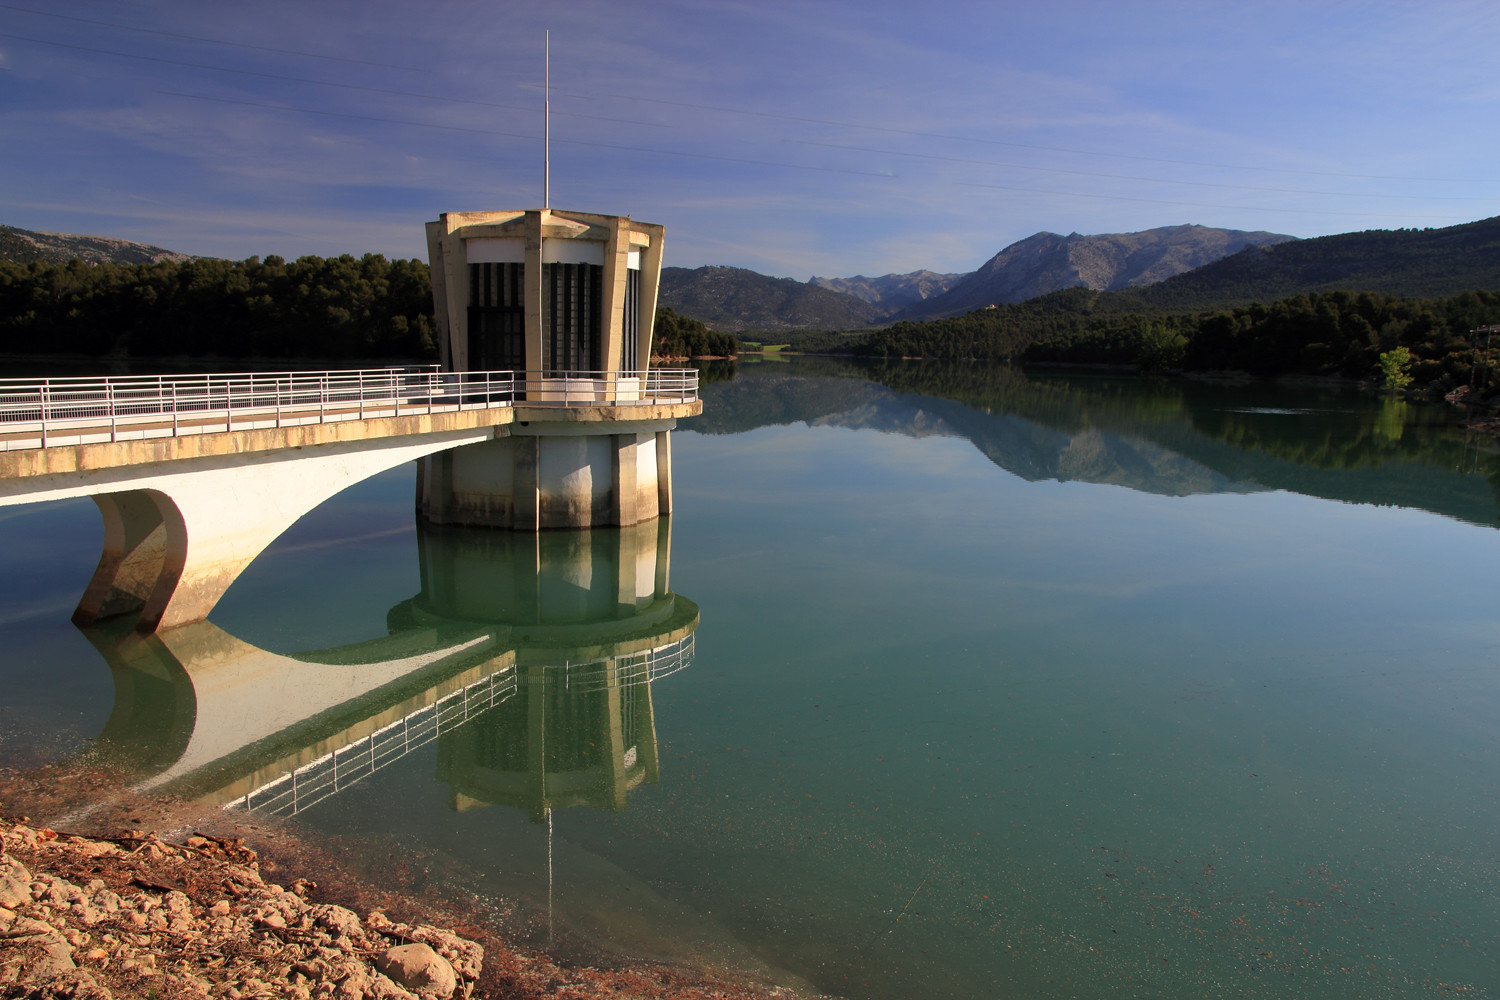 """The Pesa"" - Embalse de Bolera, Jaen - L08873"